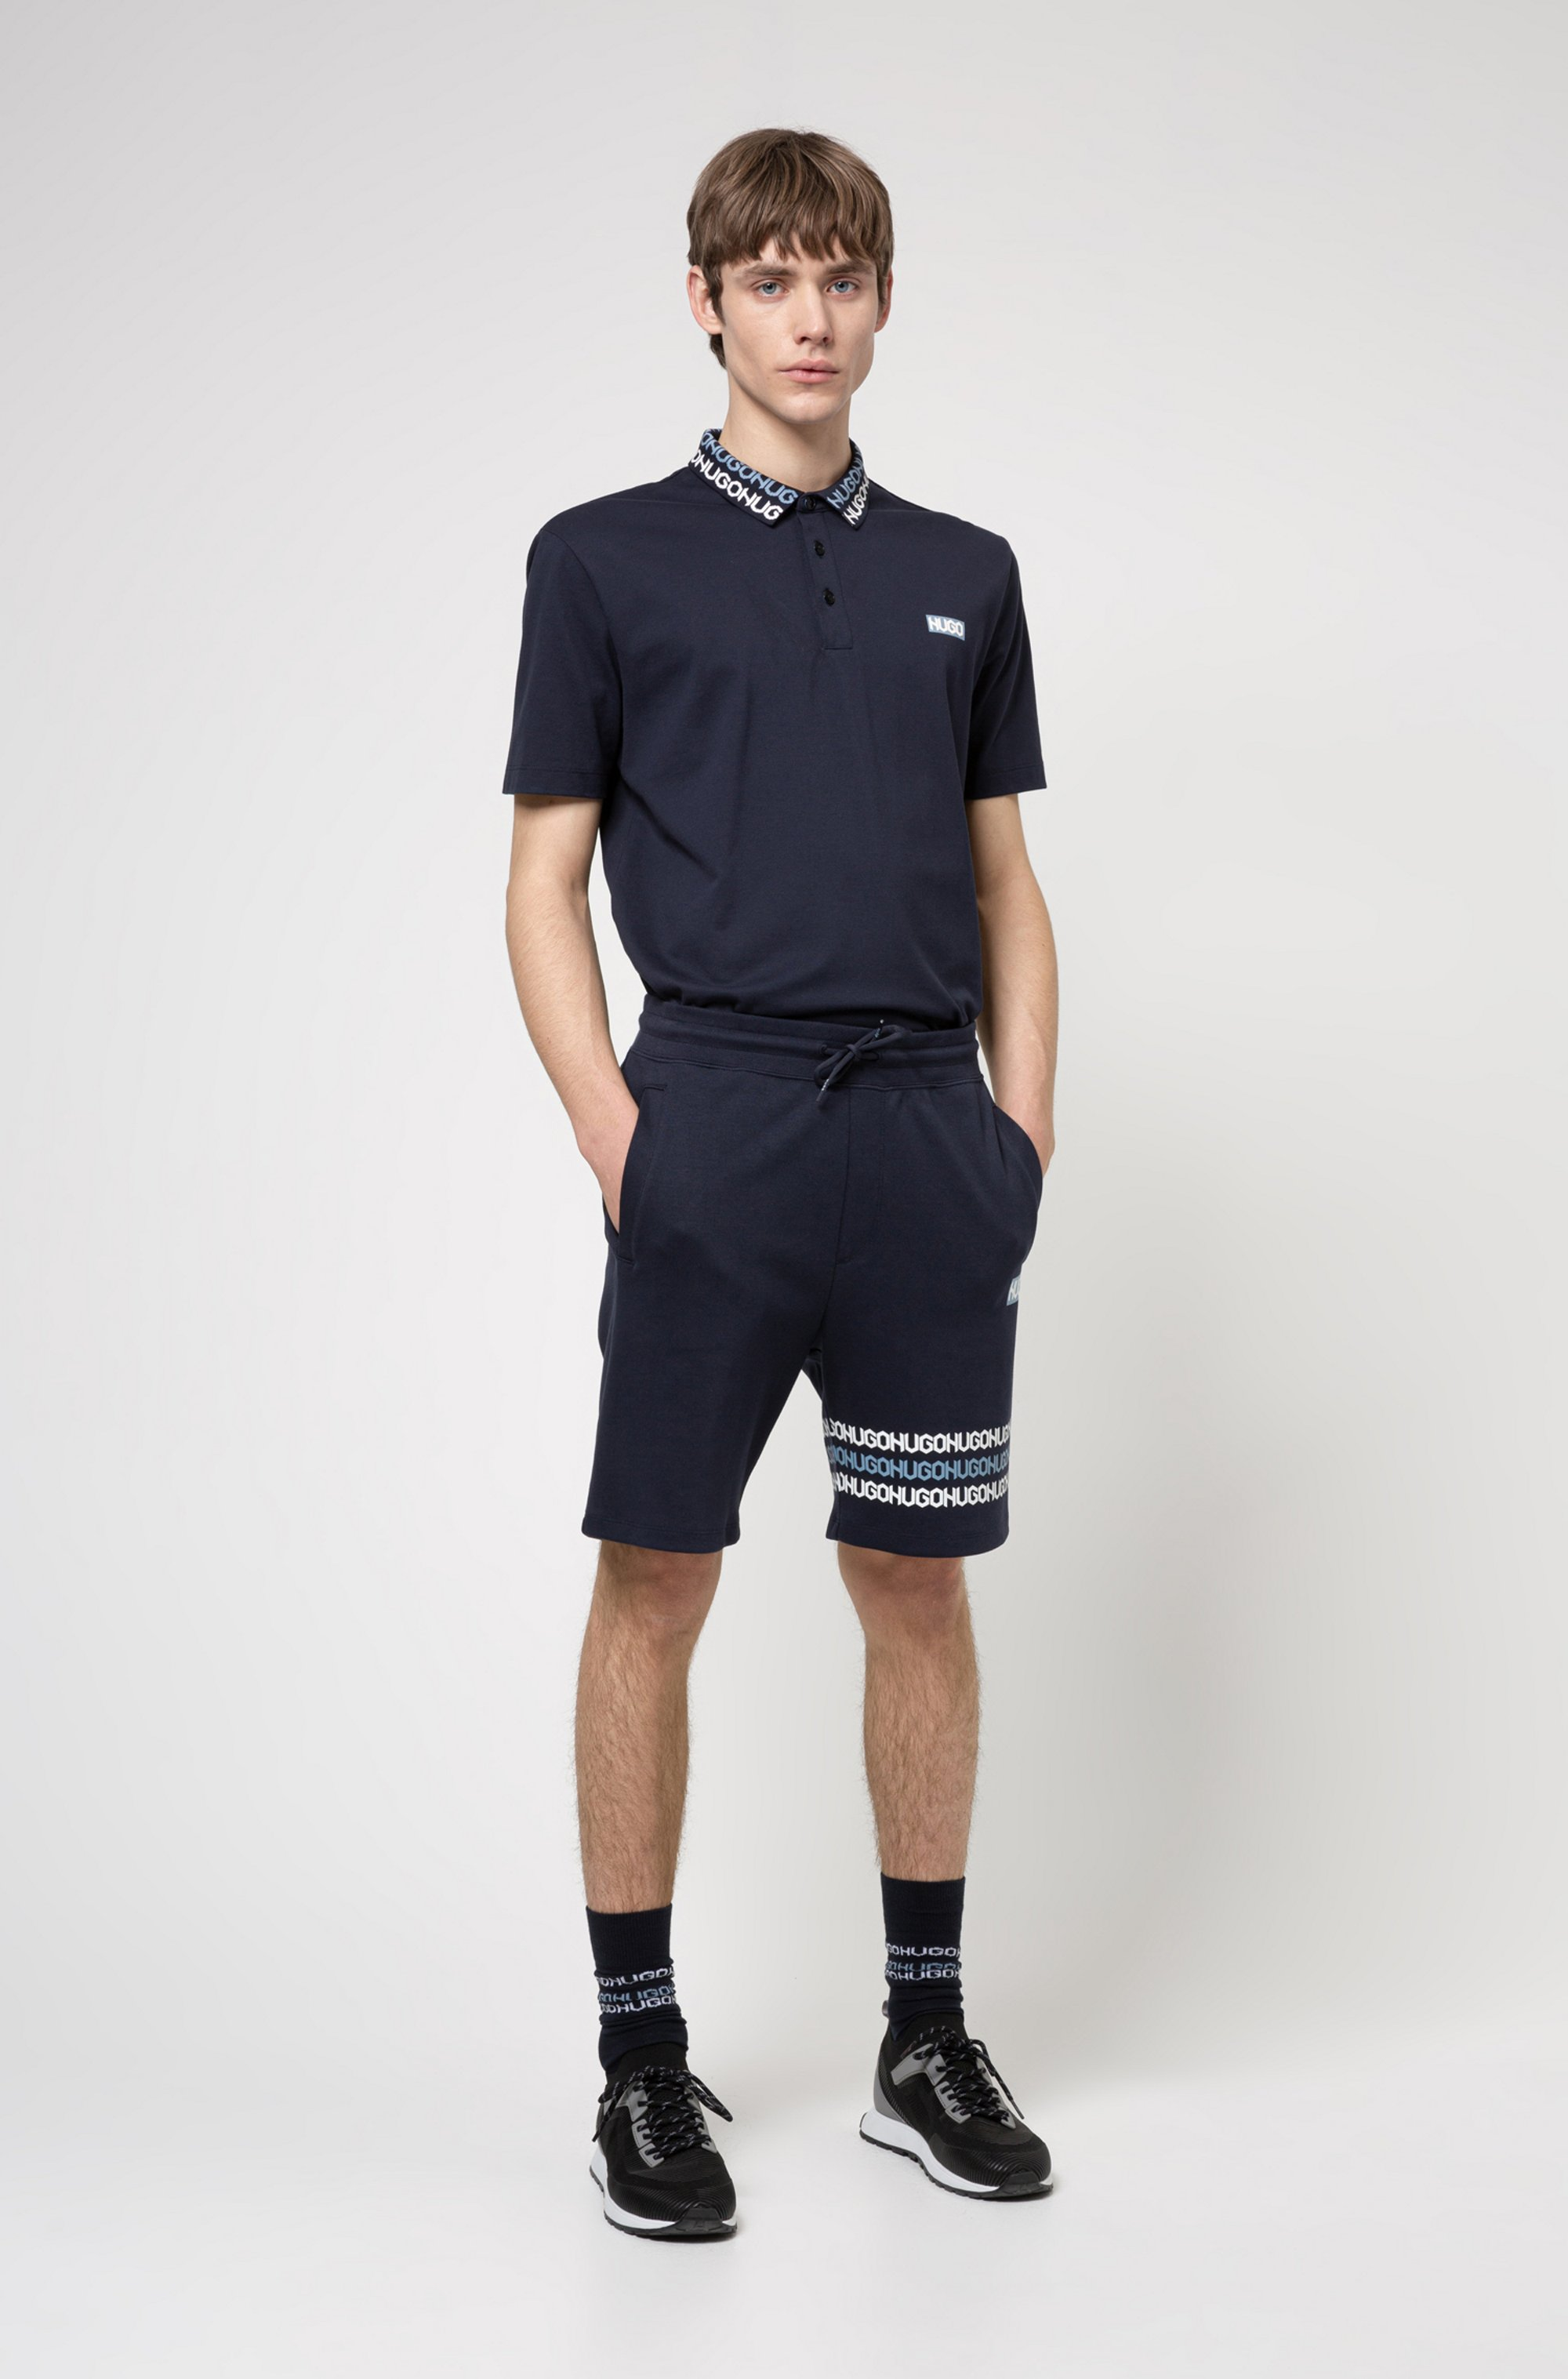 Permafit-cotton polo shirt with tyre-print logos